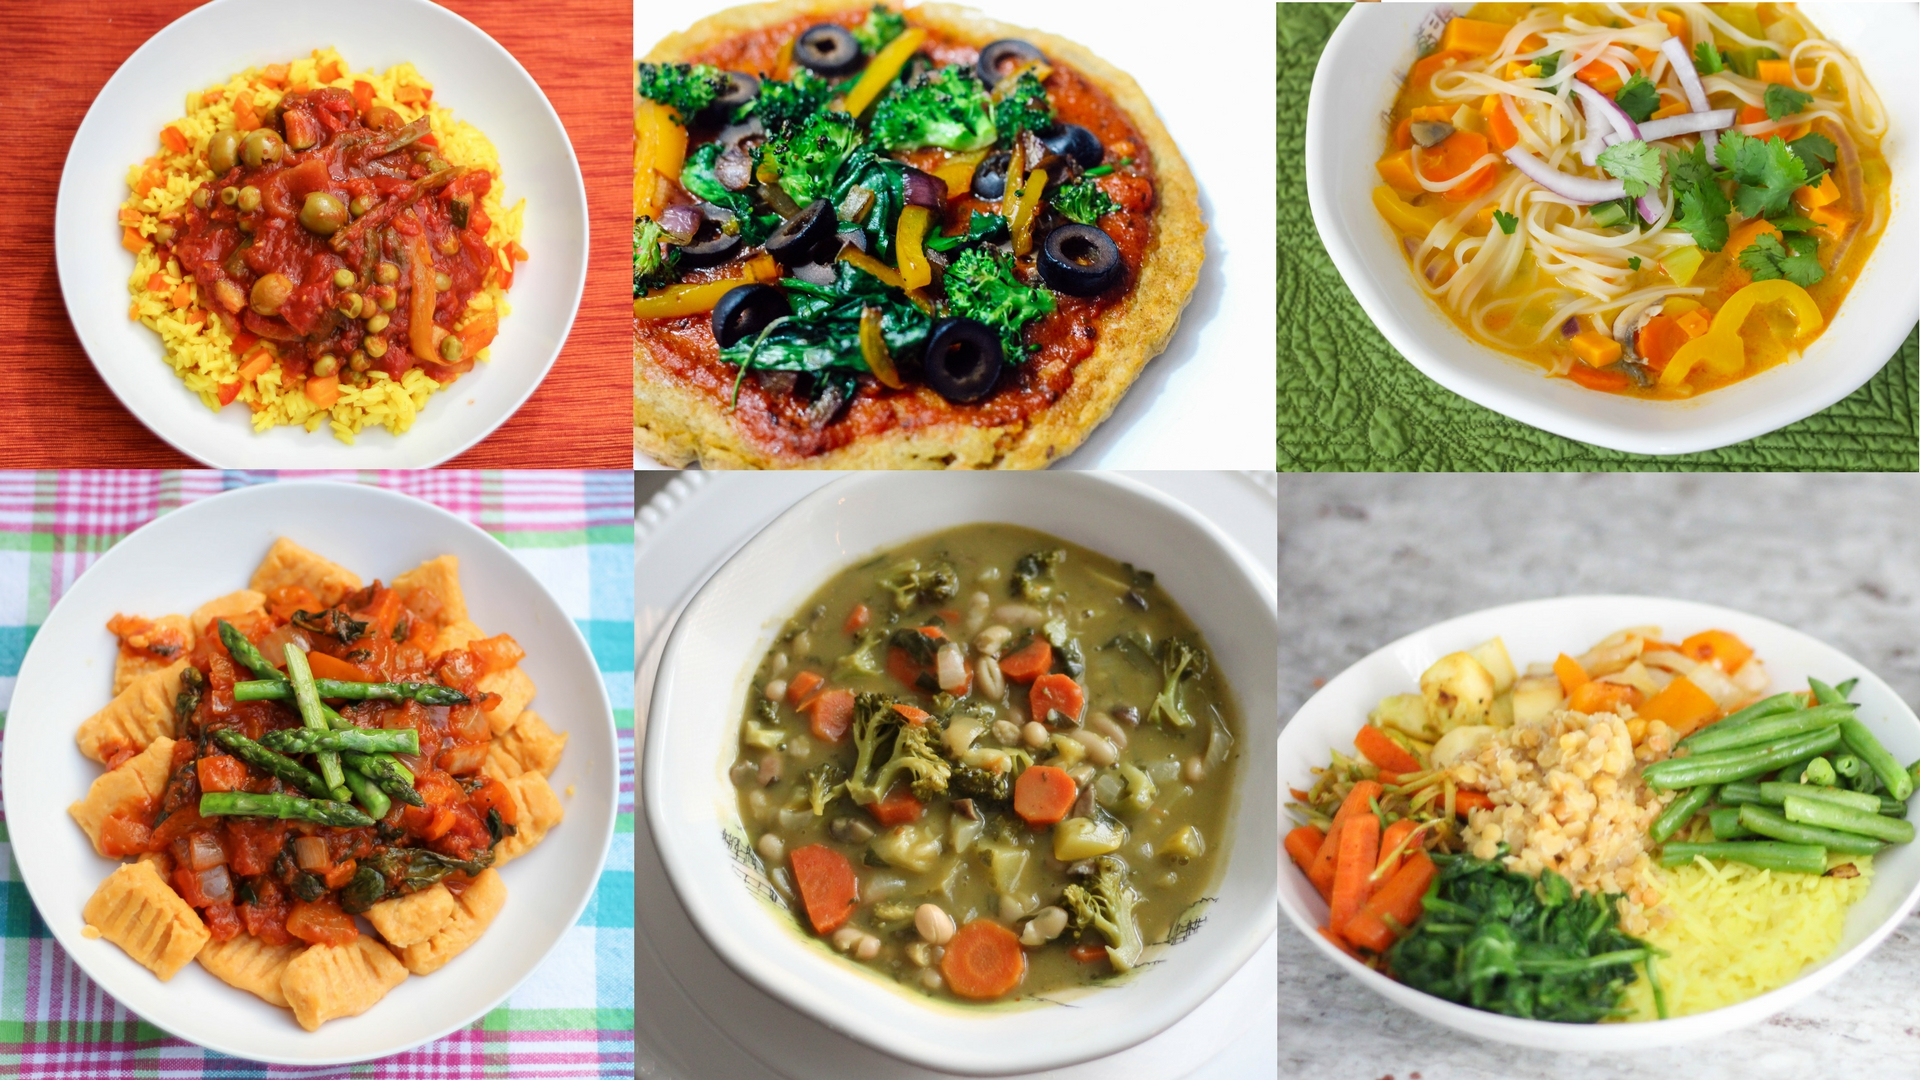 Monday-Friday Gluten Free, Diary Free & Meatless Meals